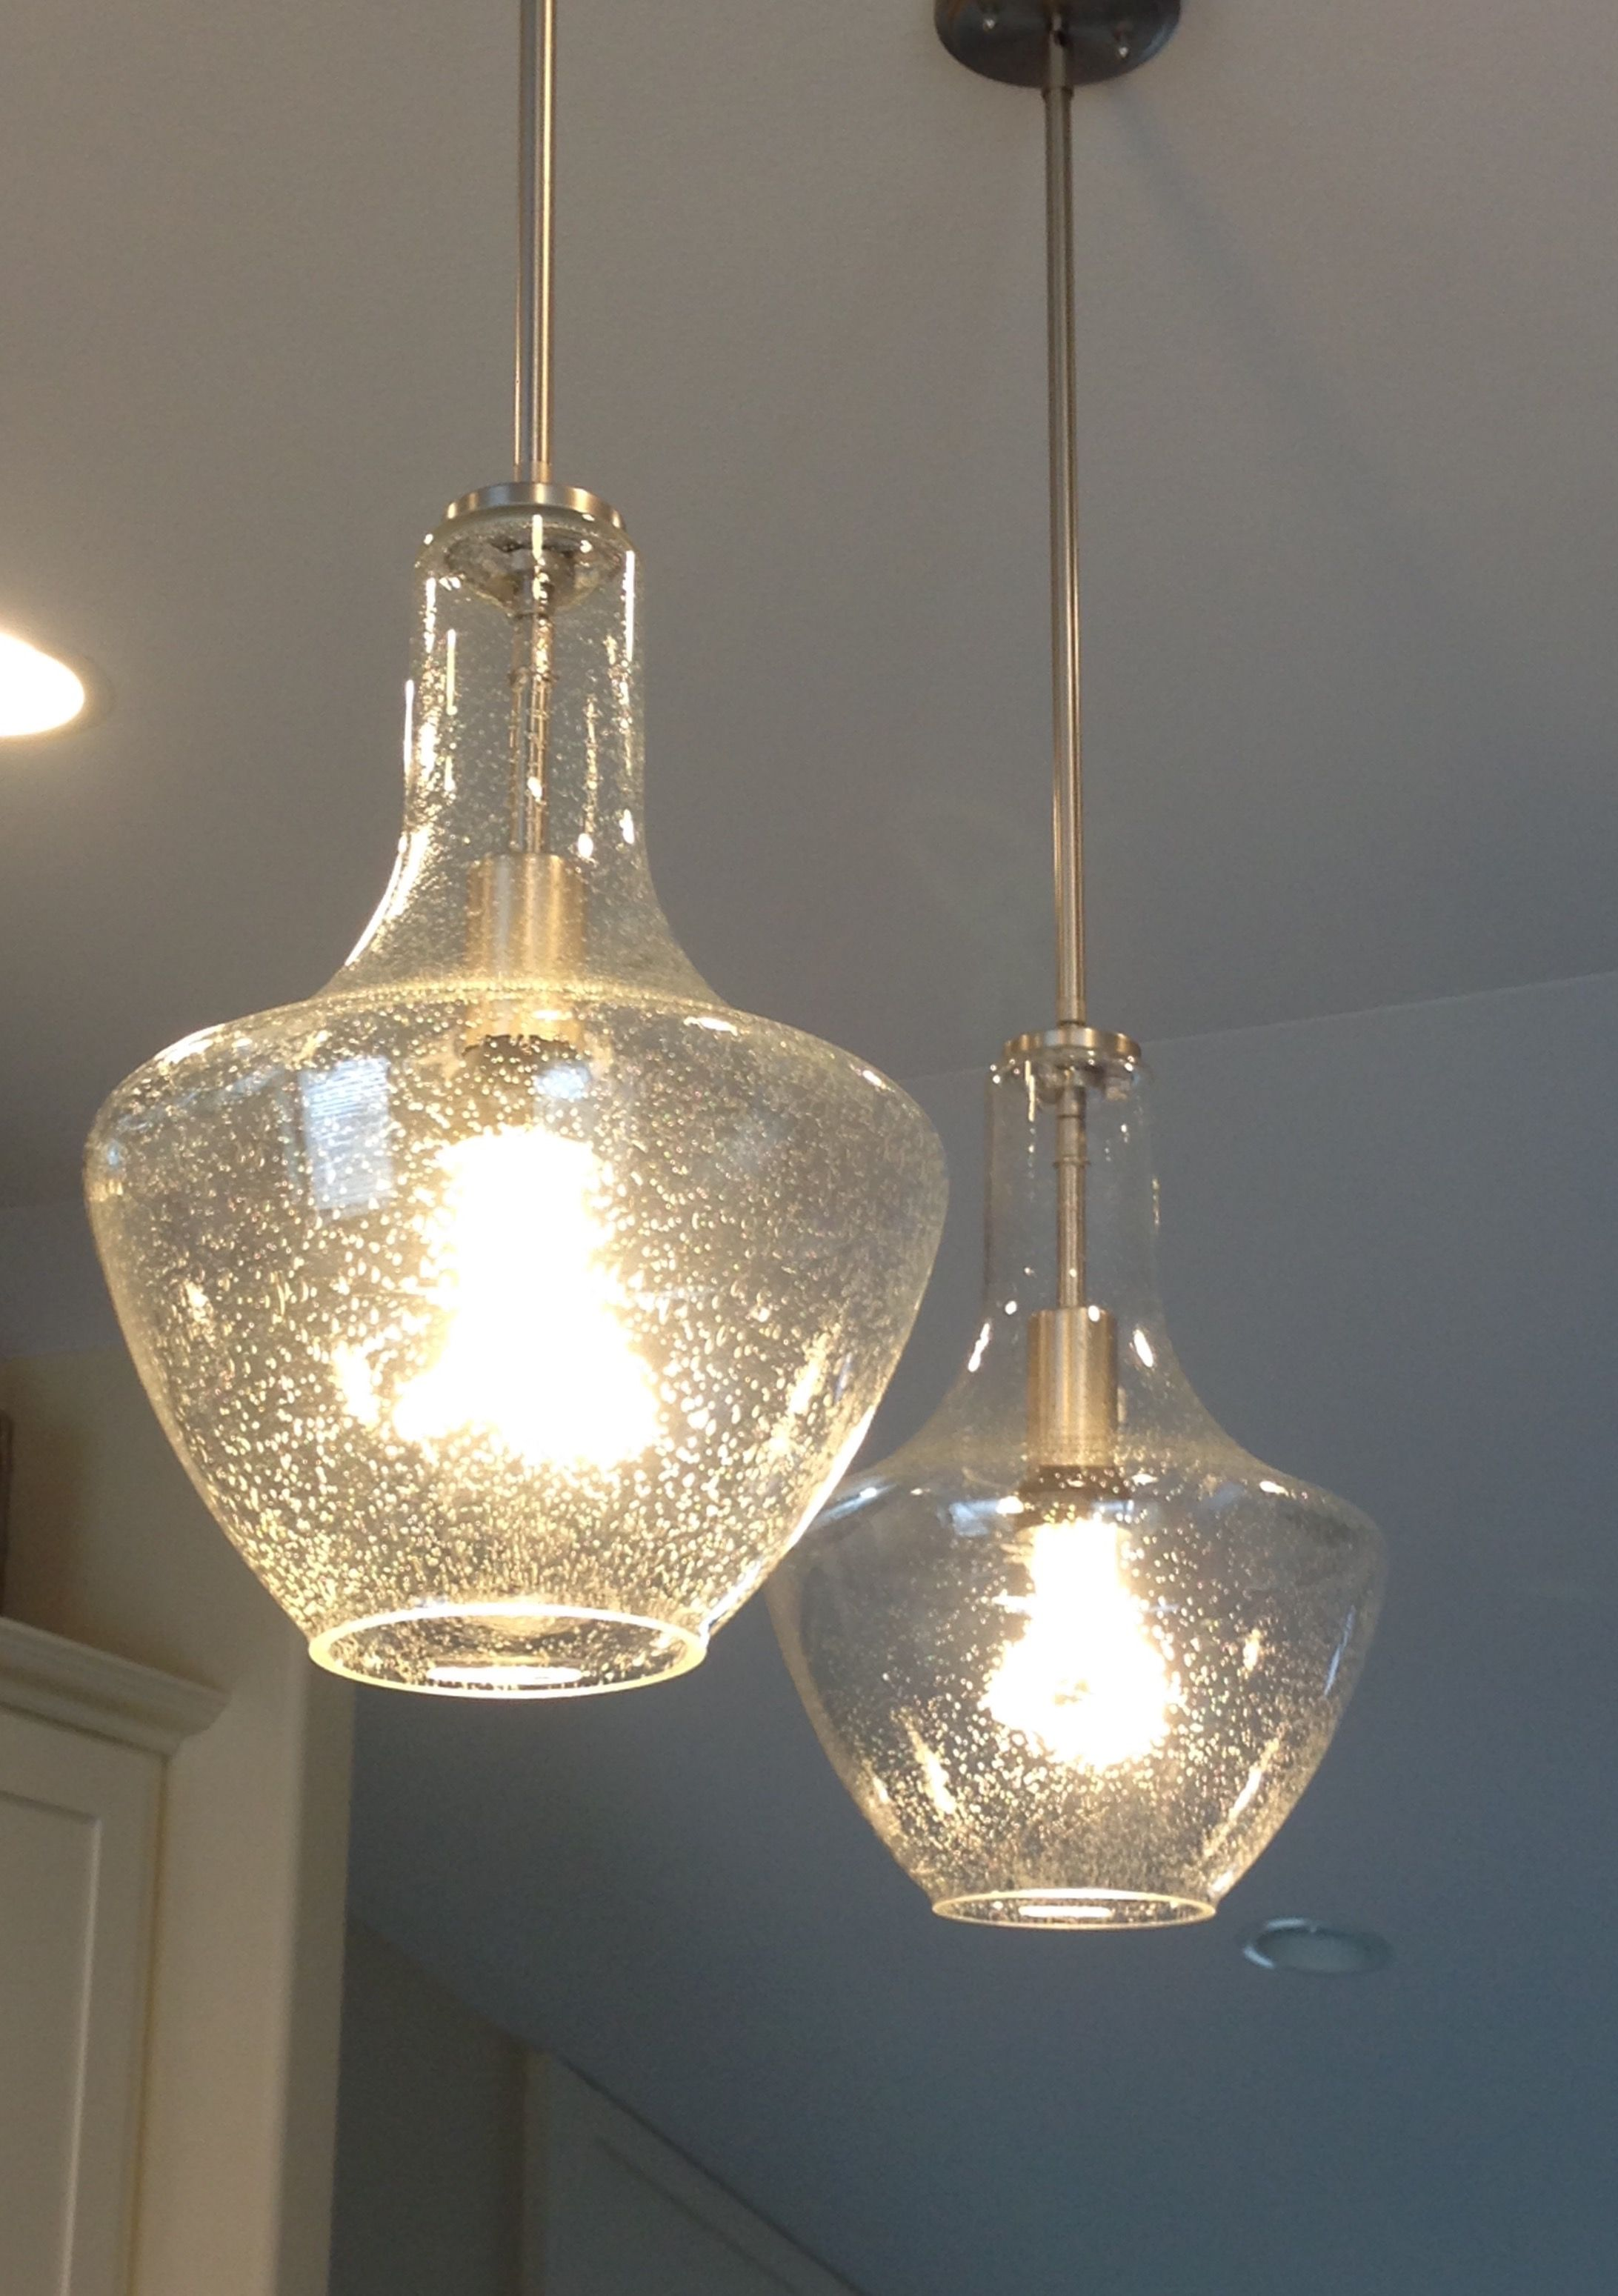 Kichler Seeded Glass Pendant Lights Seeded Glass Pendant Glass